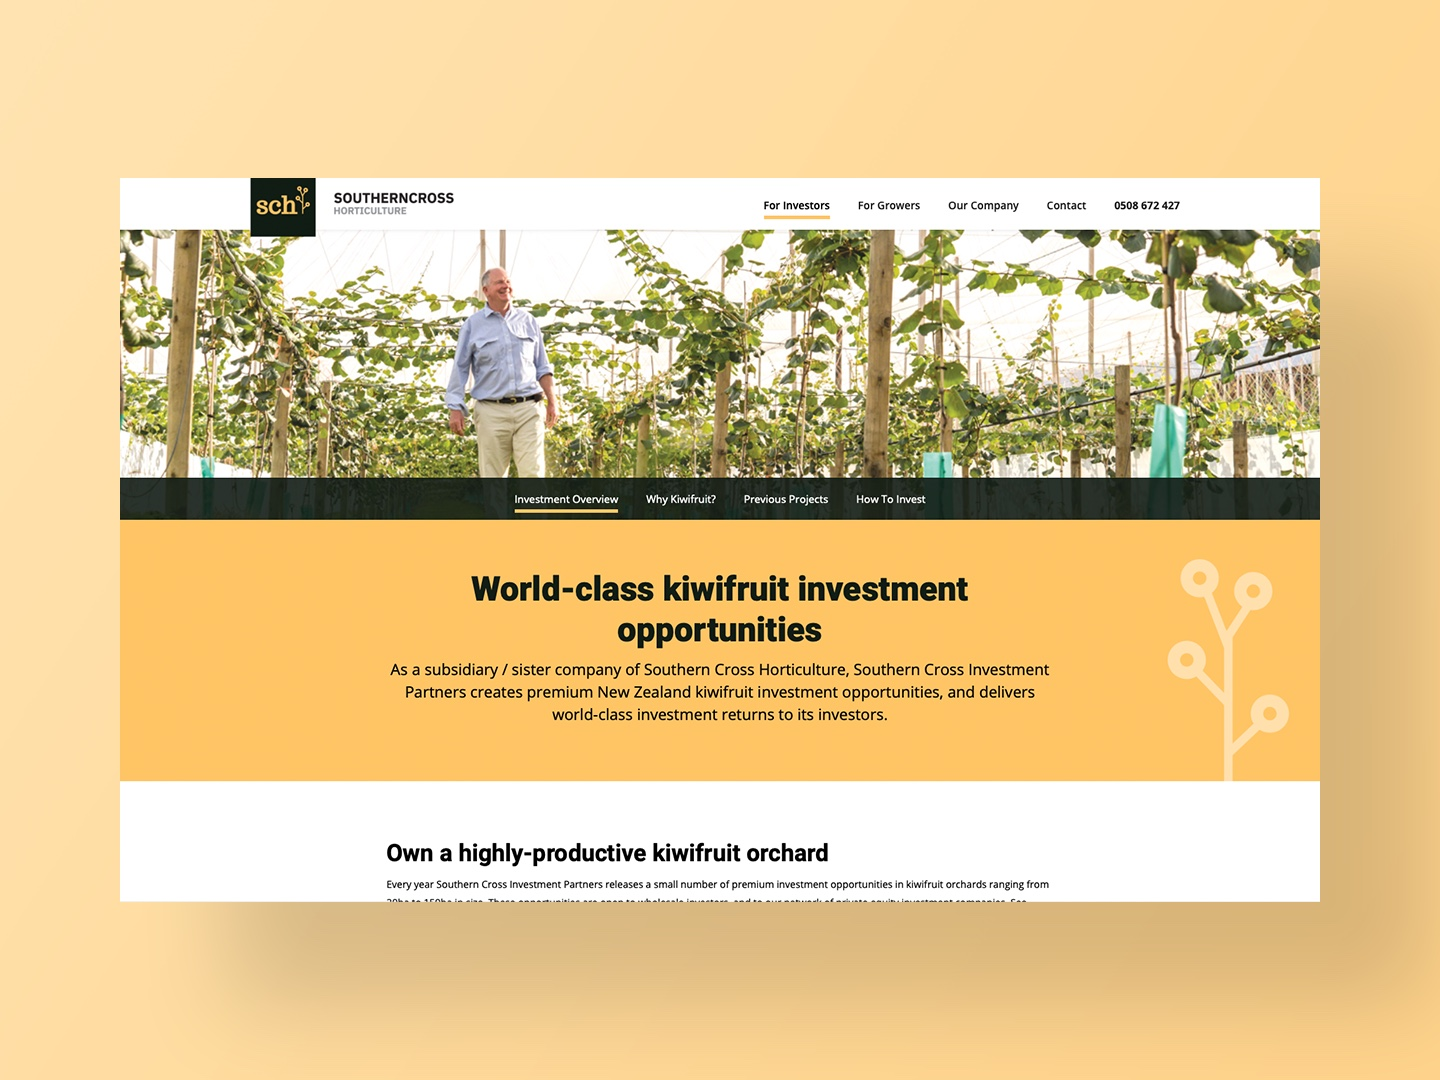 Southern Cross Horticulture Investment Overview by Neon Hive